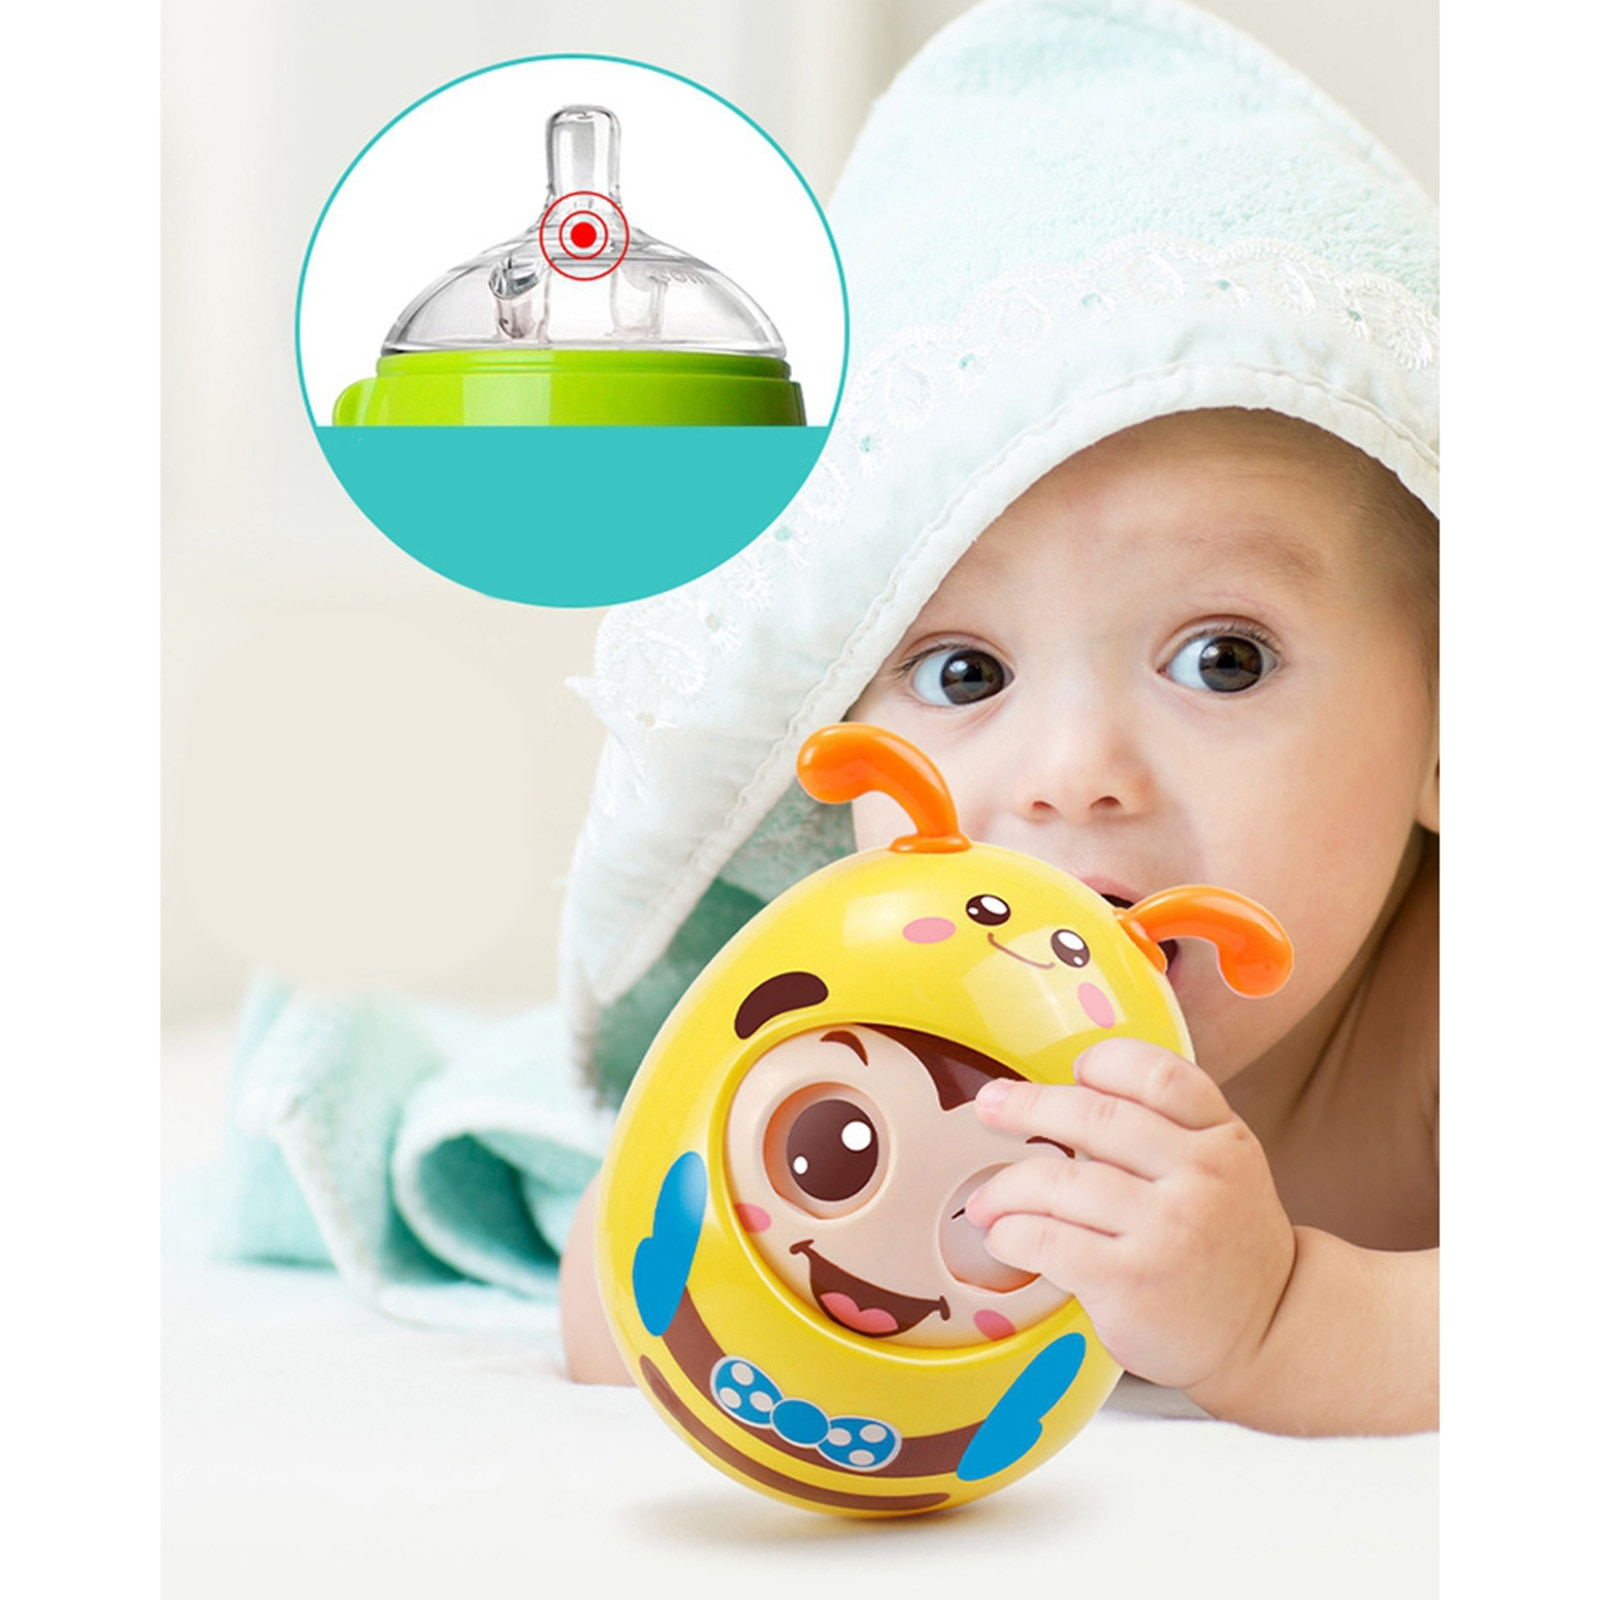 Roly-Poly Tumbler  Infant Baby Toys For 6-12 Months Developmental Toy